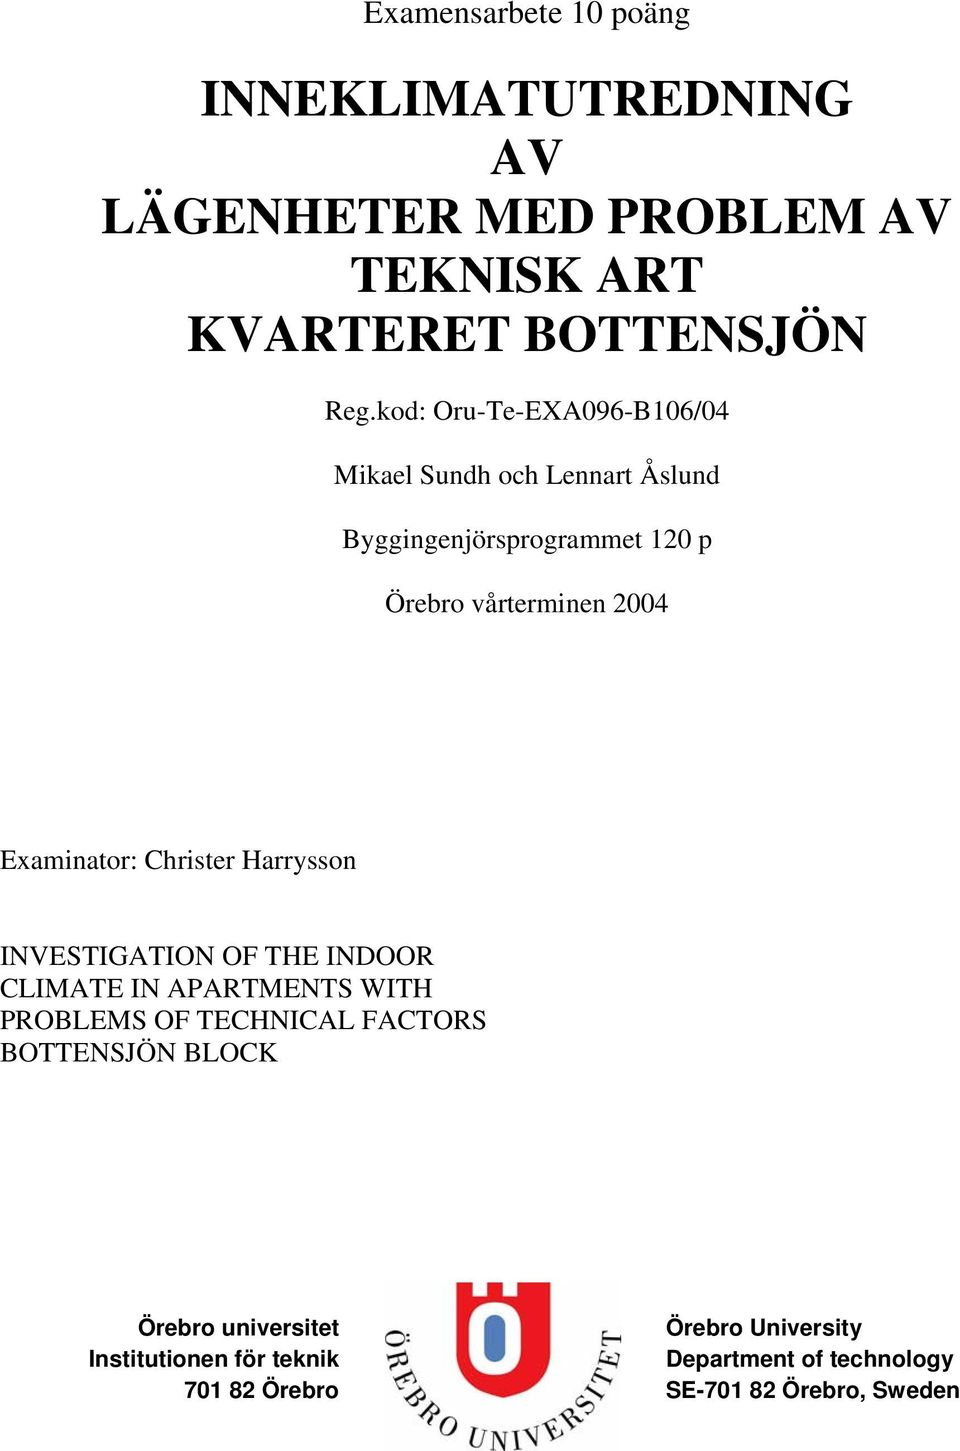 Examinator: Christer Harrysson INVESTIGATION OF THE INDOOR CLIMATE IN APARTMENTS WITH PROBLEMS OF TECHNICAL FACTORS